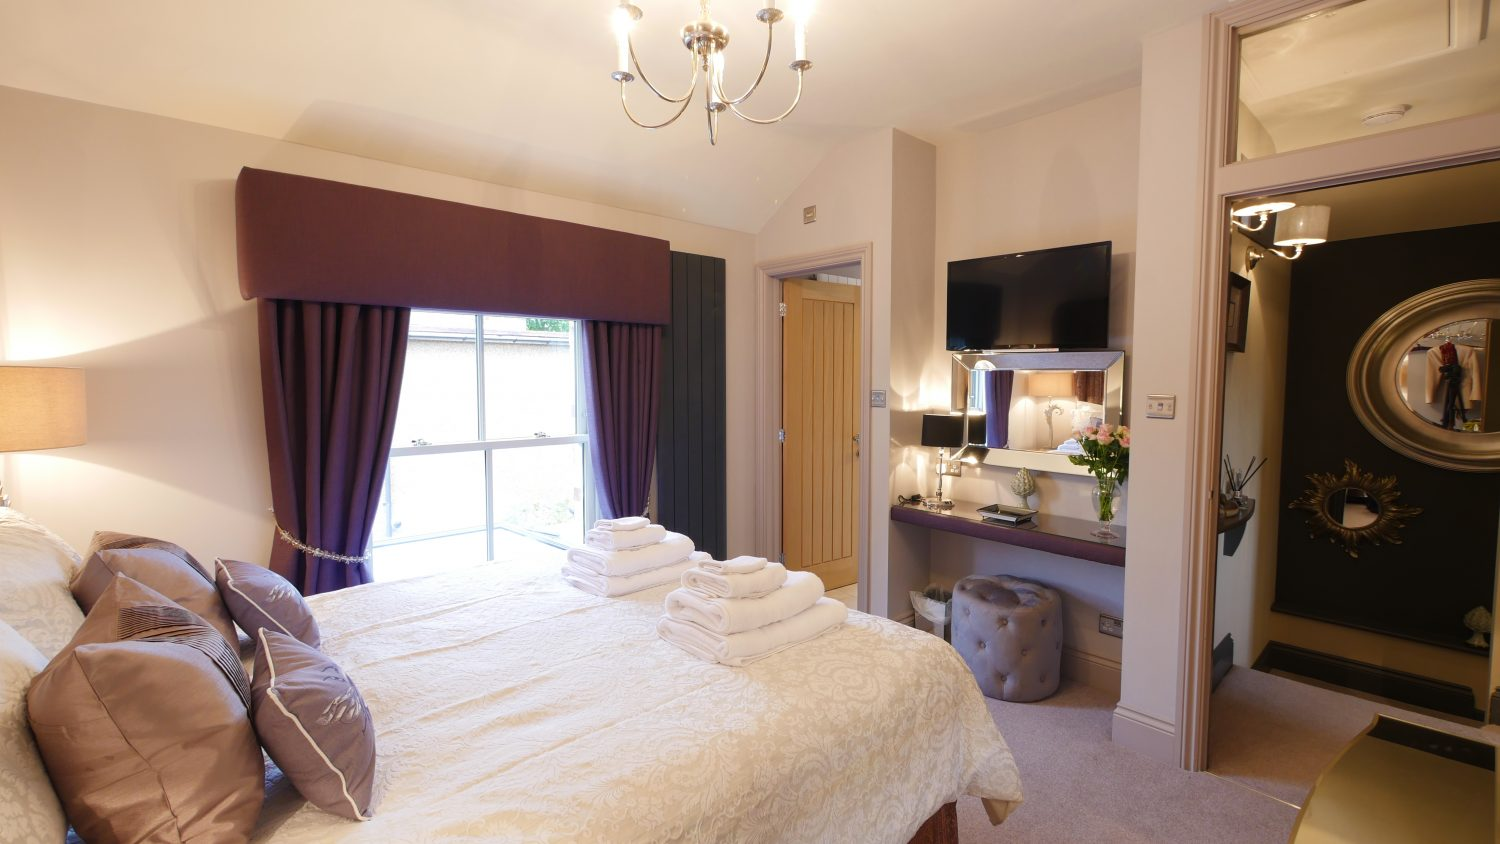 Honeybee luxury holiday cottage 5 star accommodation in northumberland